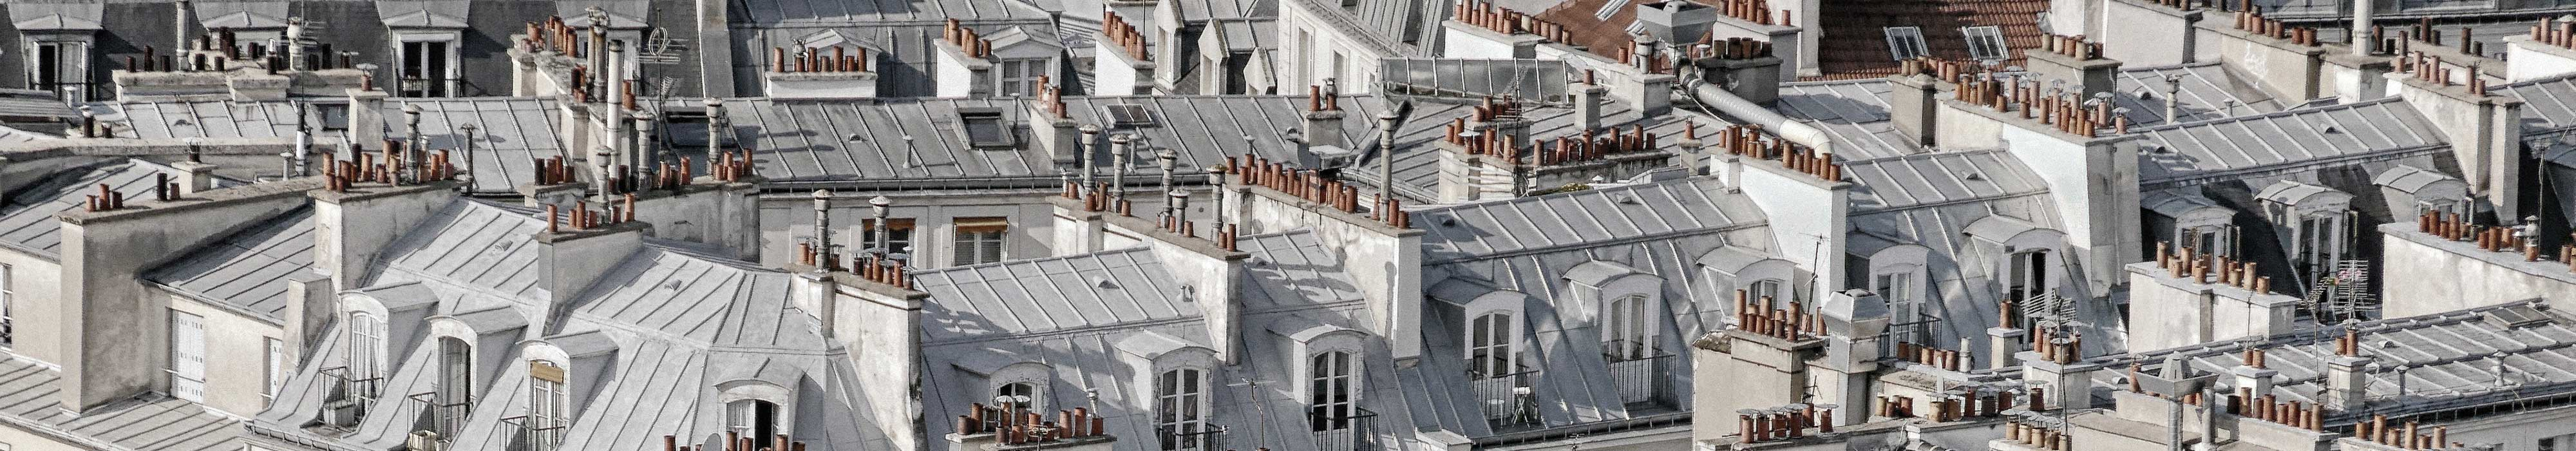 Cityscape of European houses with the phrase functional medicine written on top